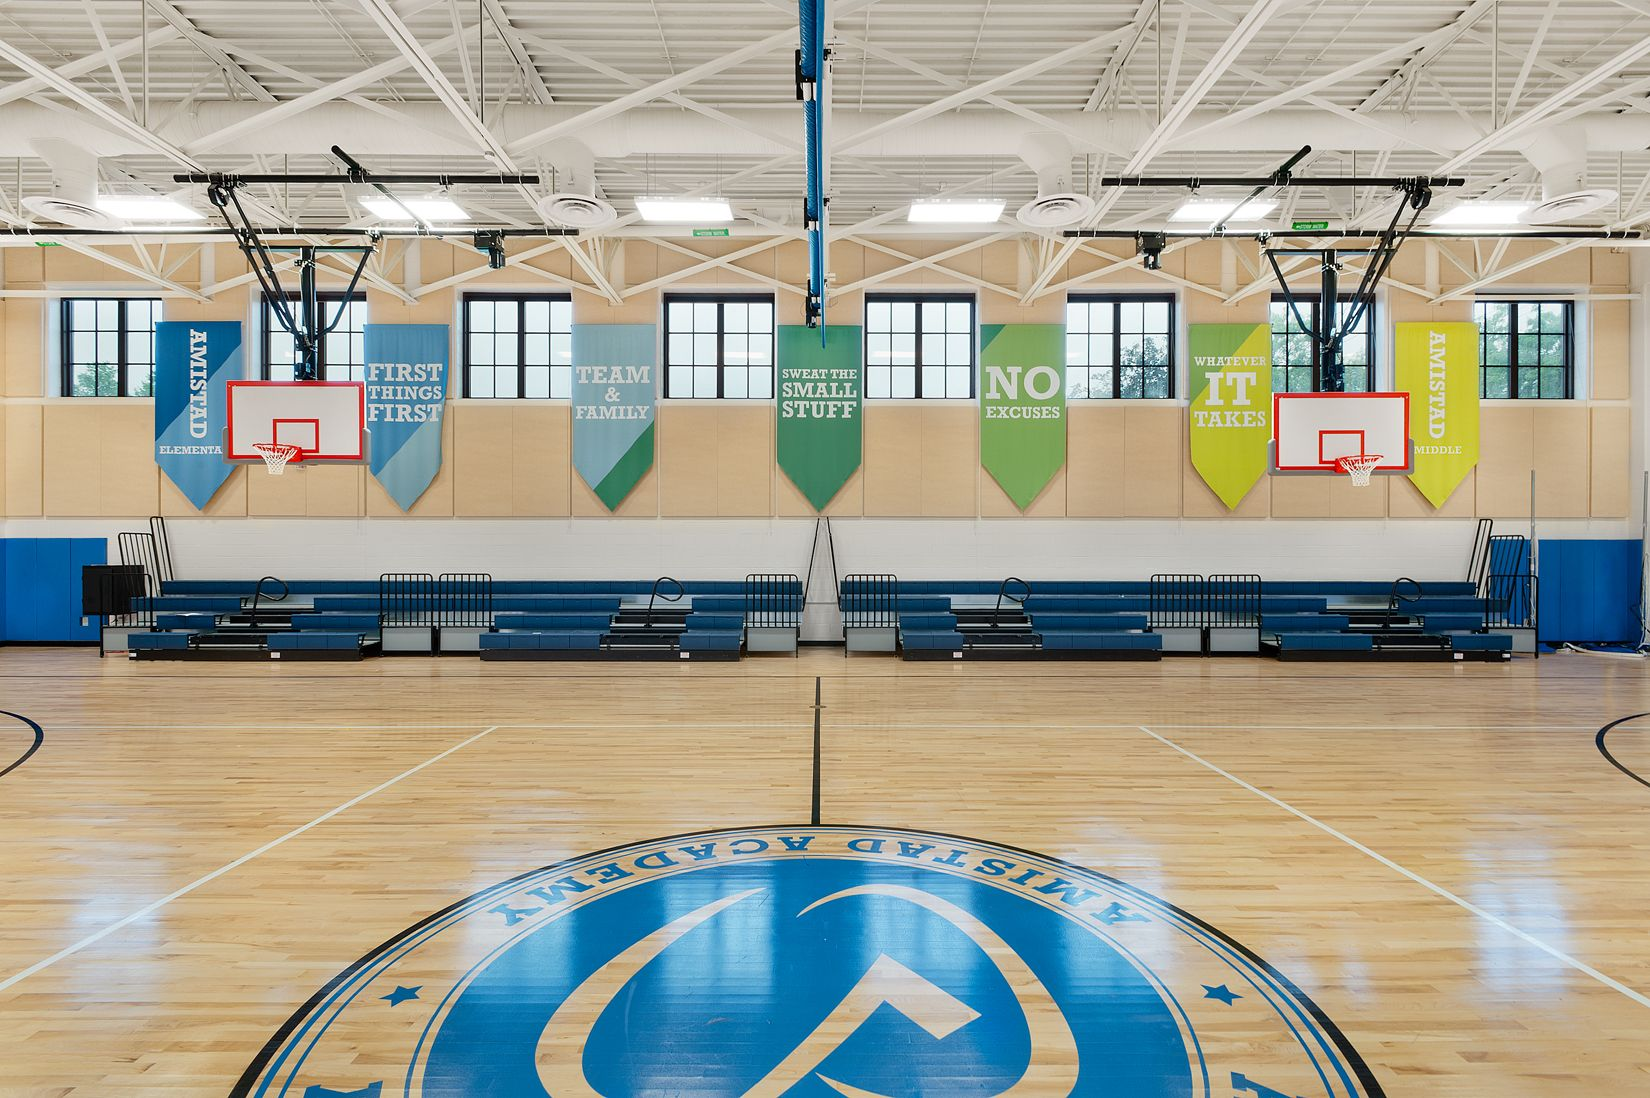 Amistad Academy S Gym Banners In New Haven Ct Gym Banner Environmental Graphic Design One Team